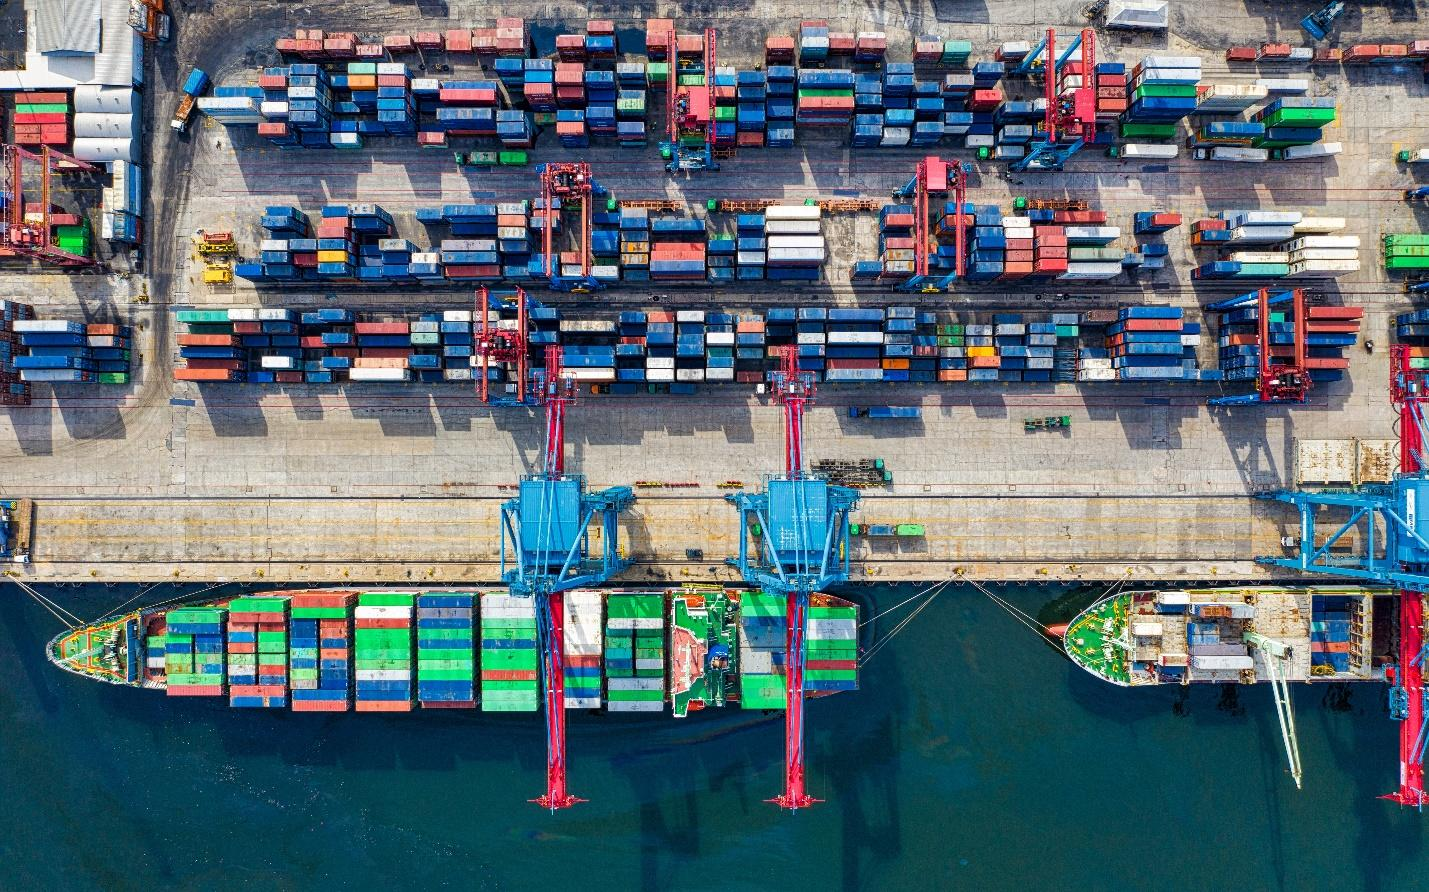 Port of Shanghai, China-Busiest and Largest Ports in the World